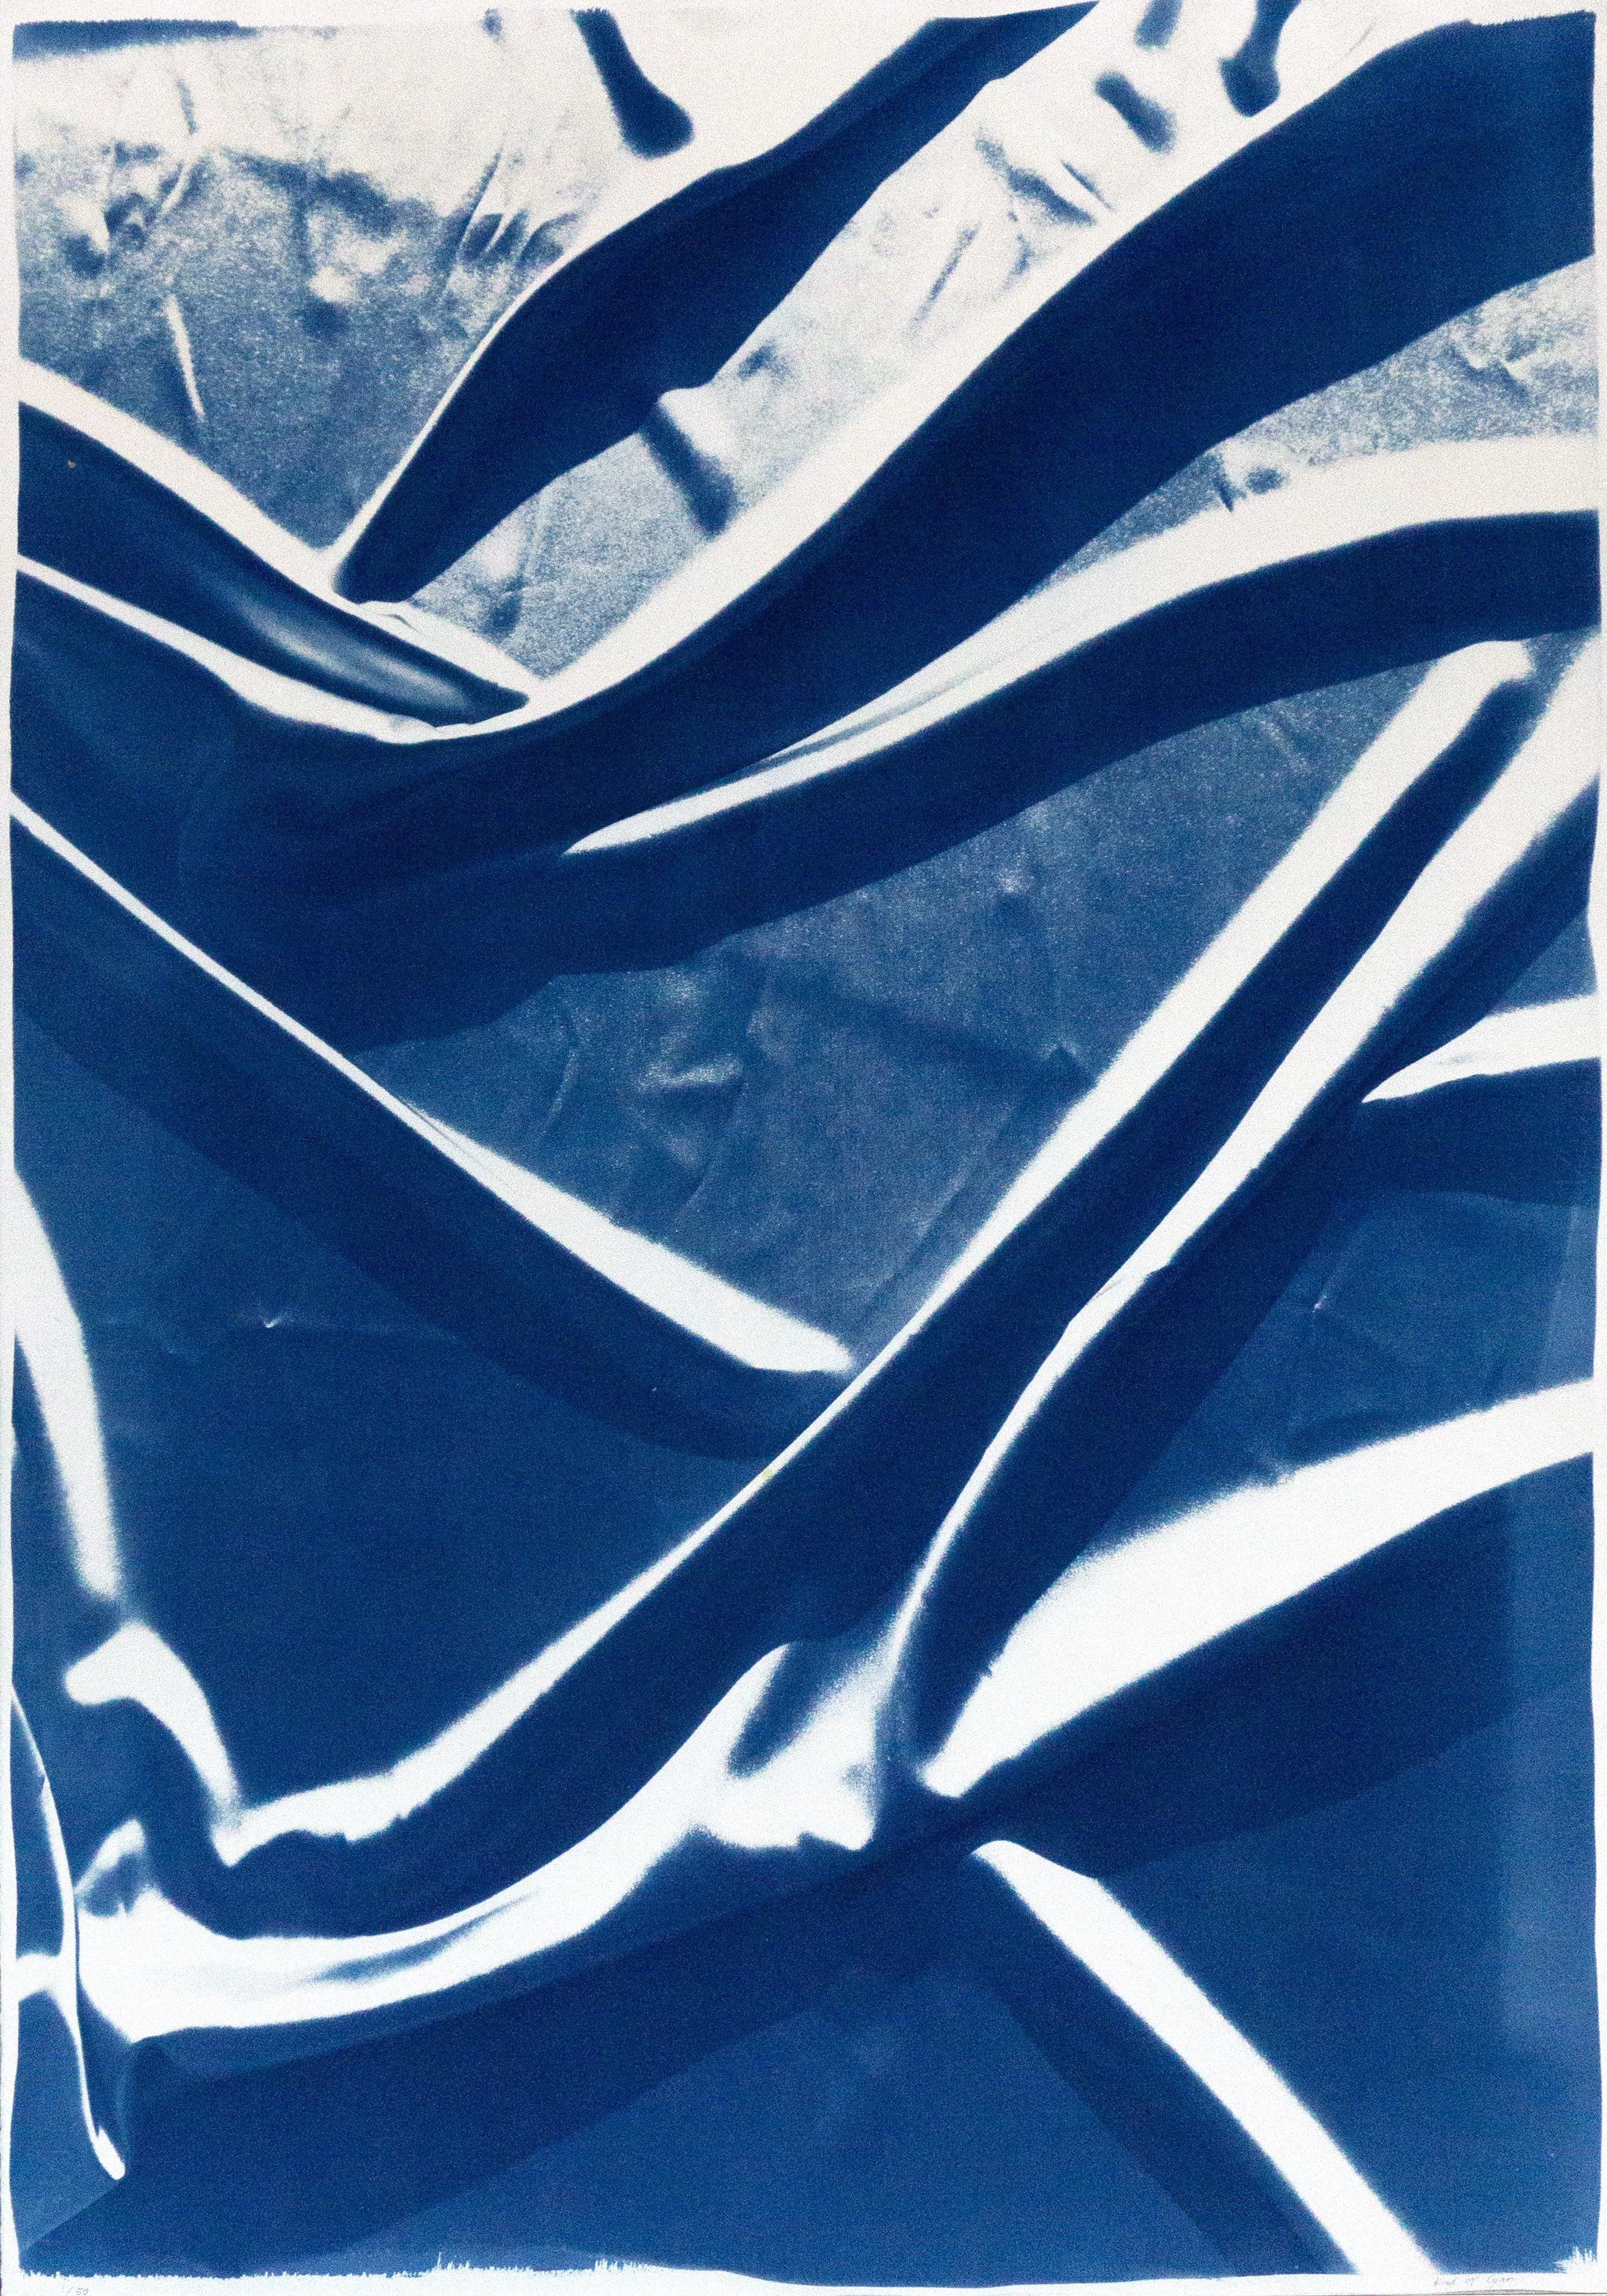 Smooth Fabric Composition, Classic Blue Silk Blueprint on Watercolor Paper